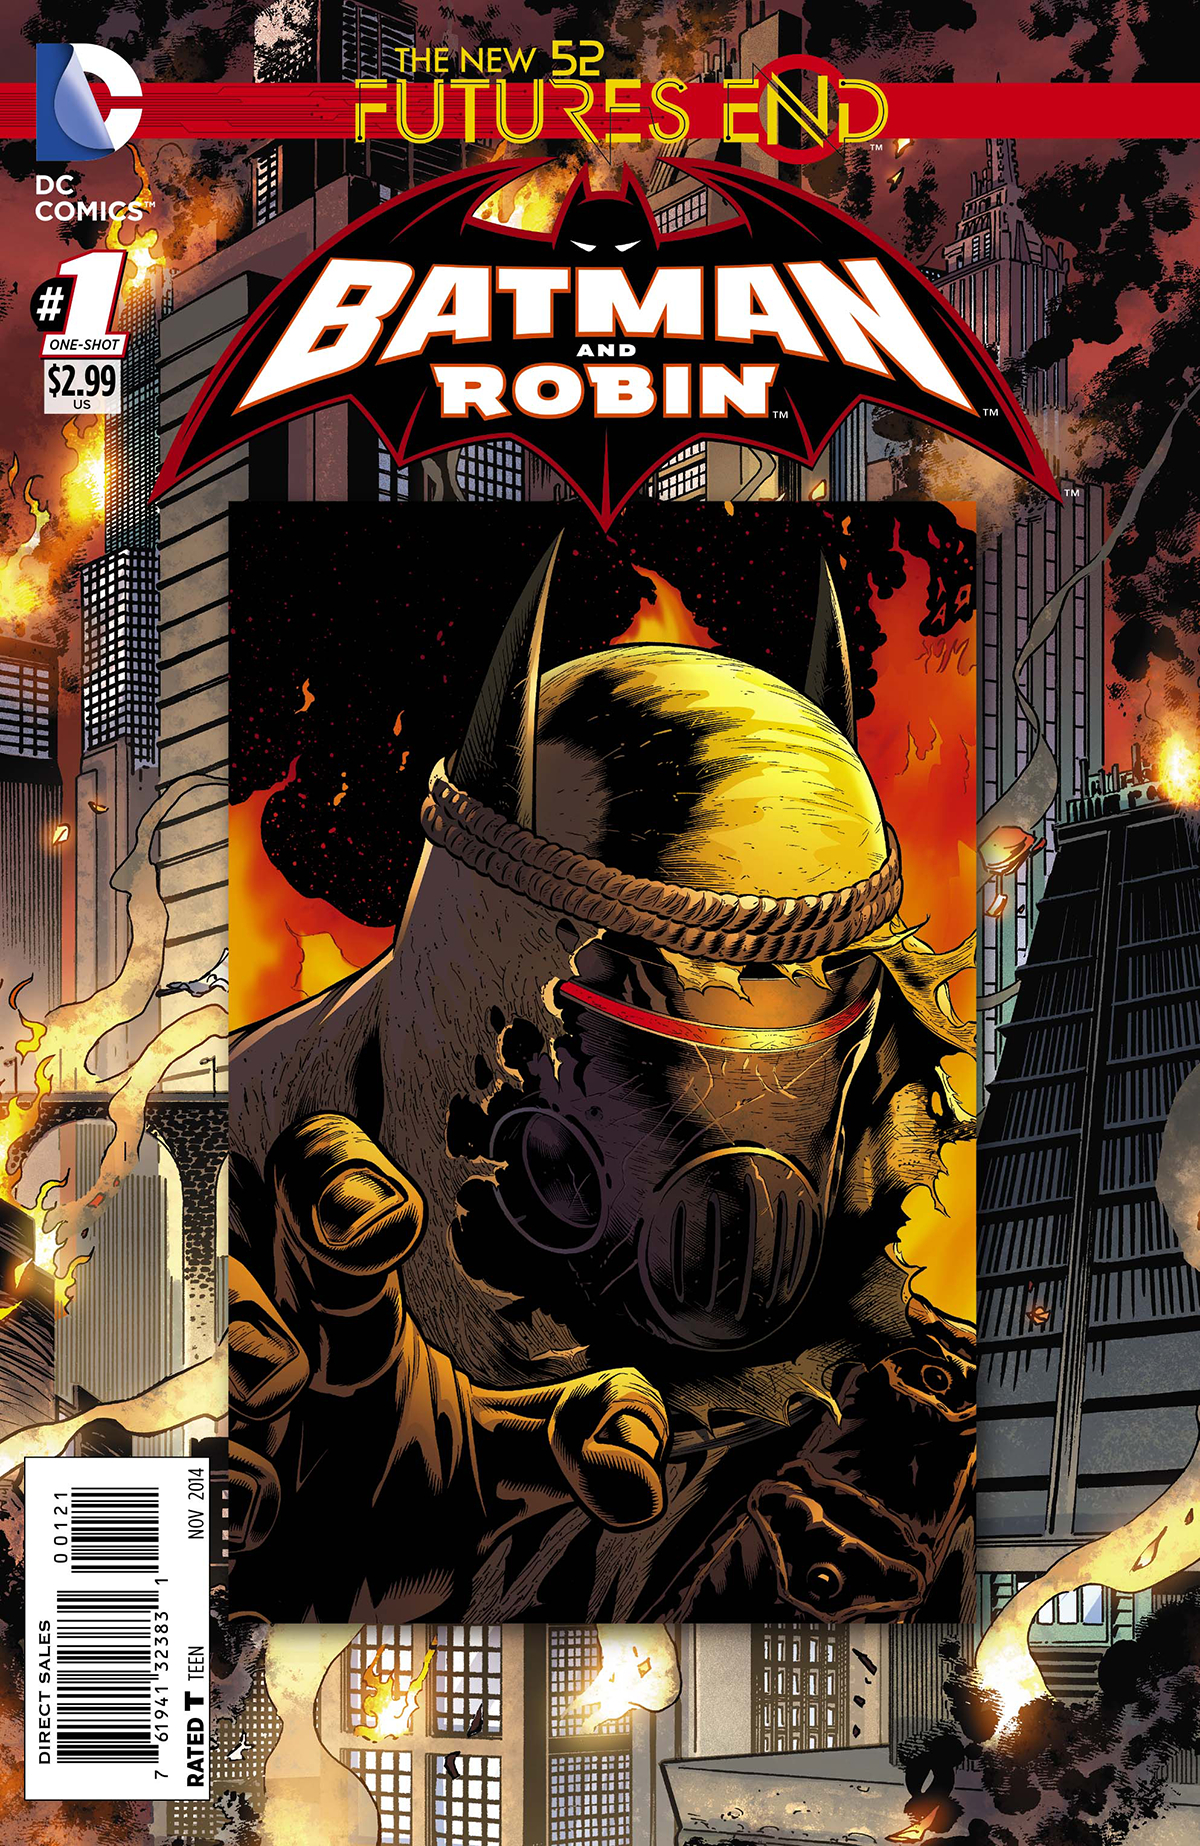 BATMAN AND ROBIN FUTURES END #1 STANDARD ED